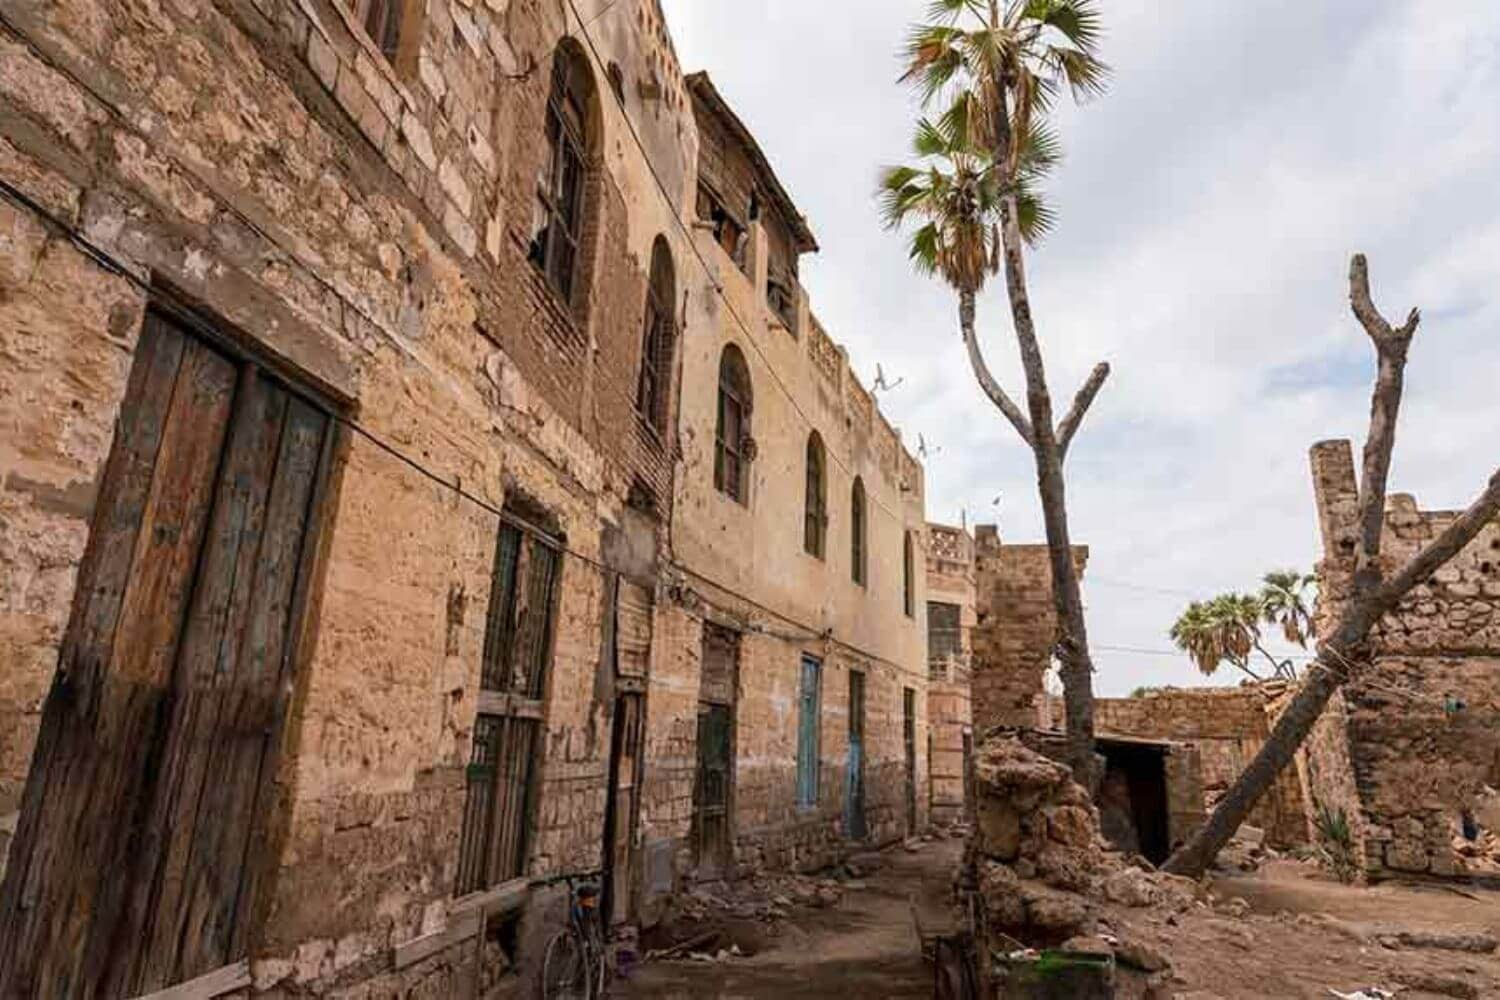 11One of the old buildings Massawa